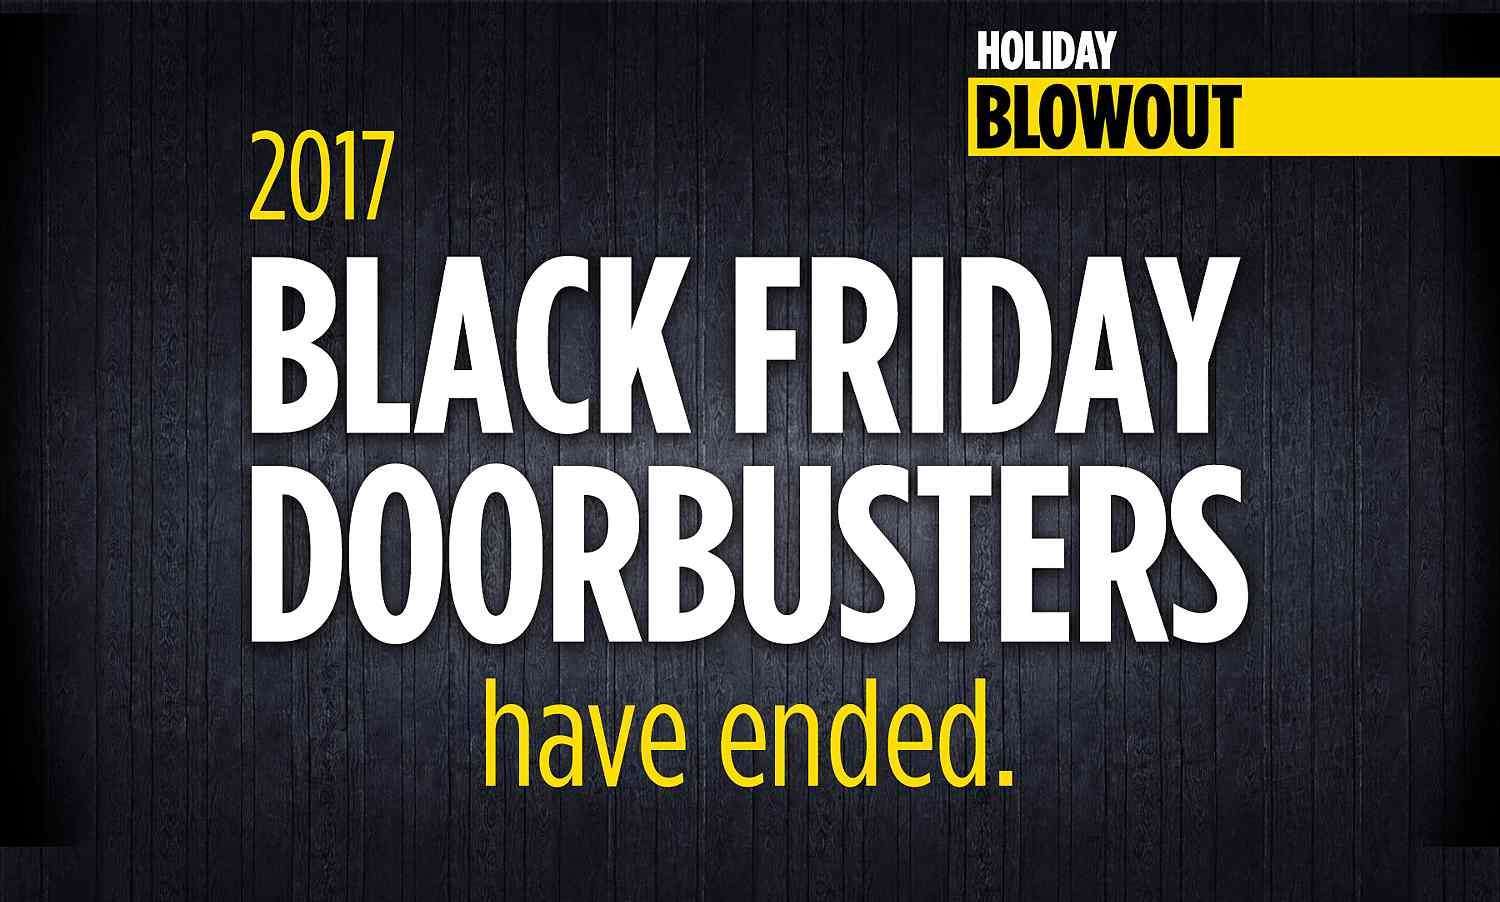 2017 Black Friday Doorbusters Have Ended